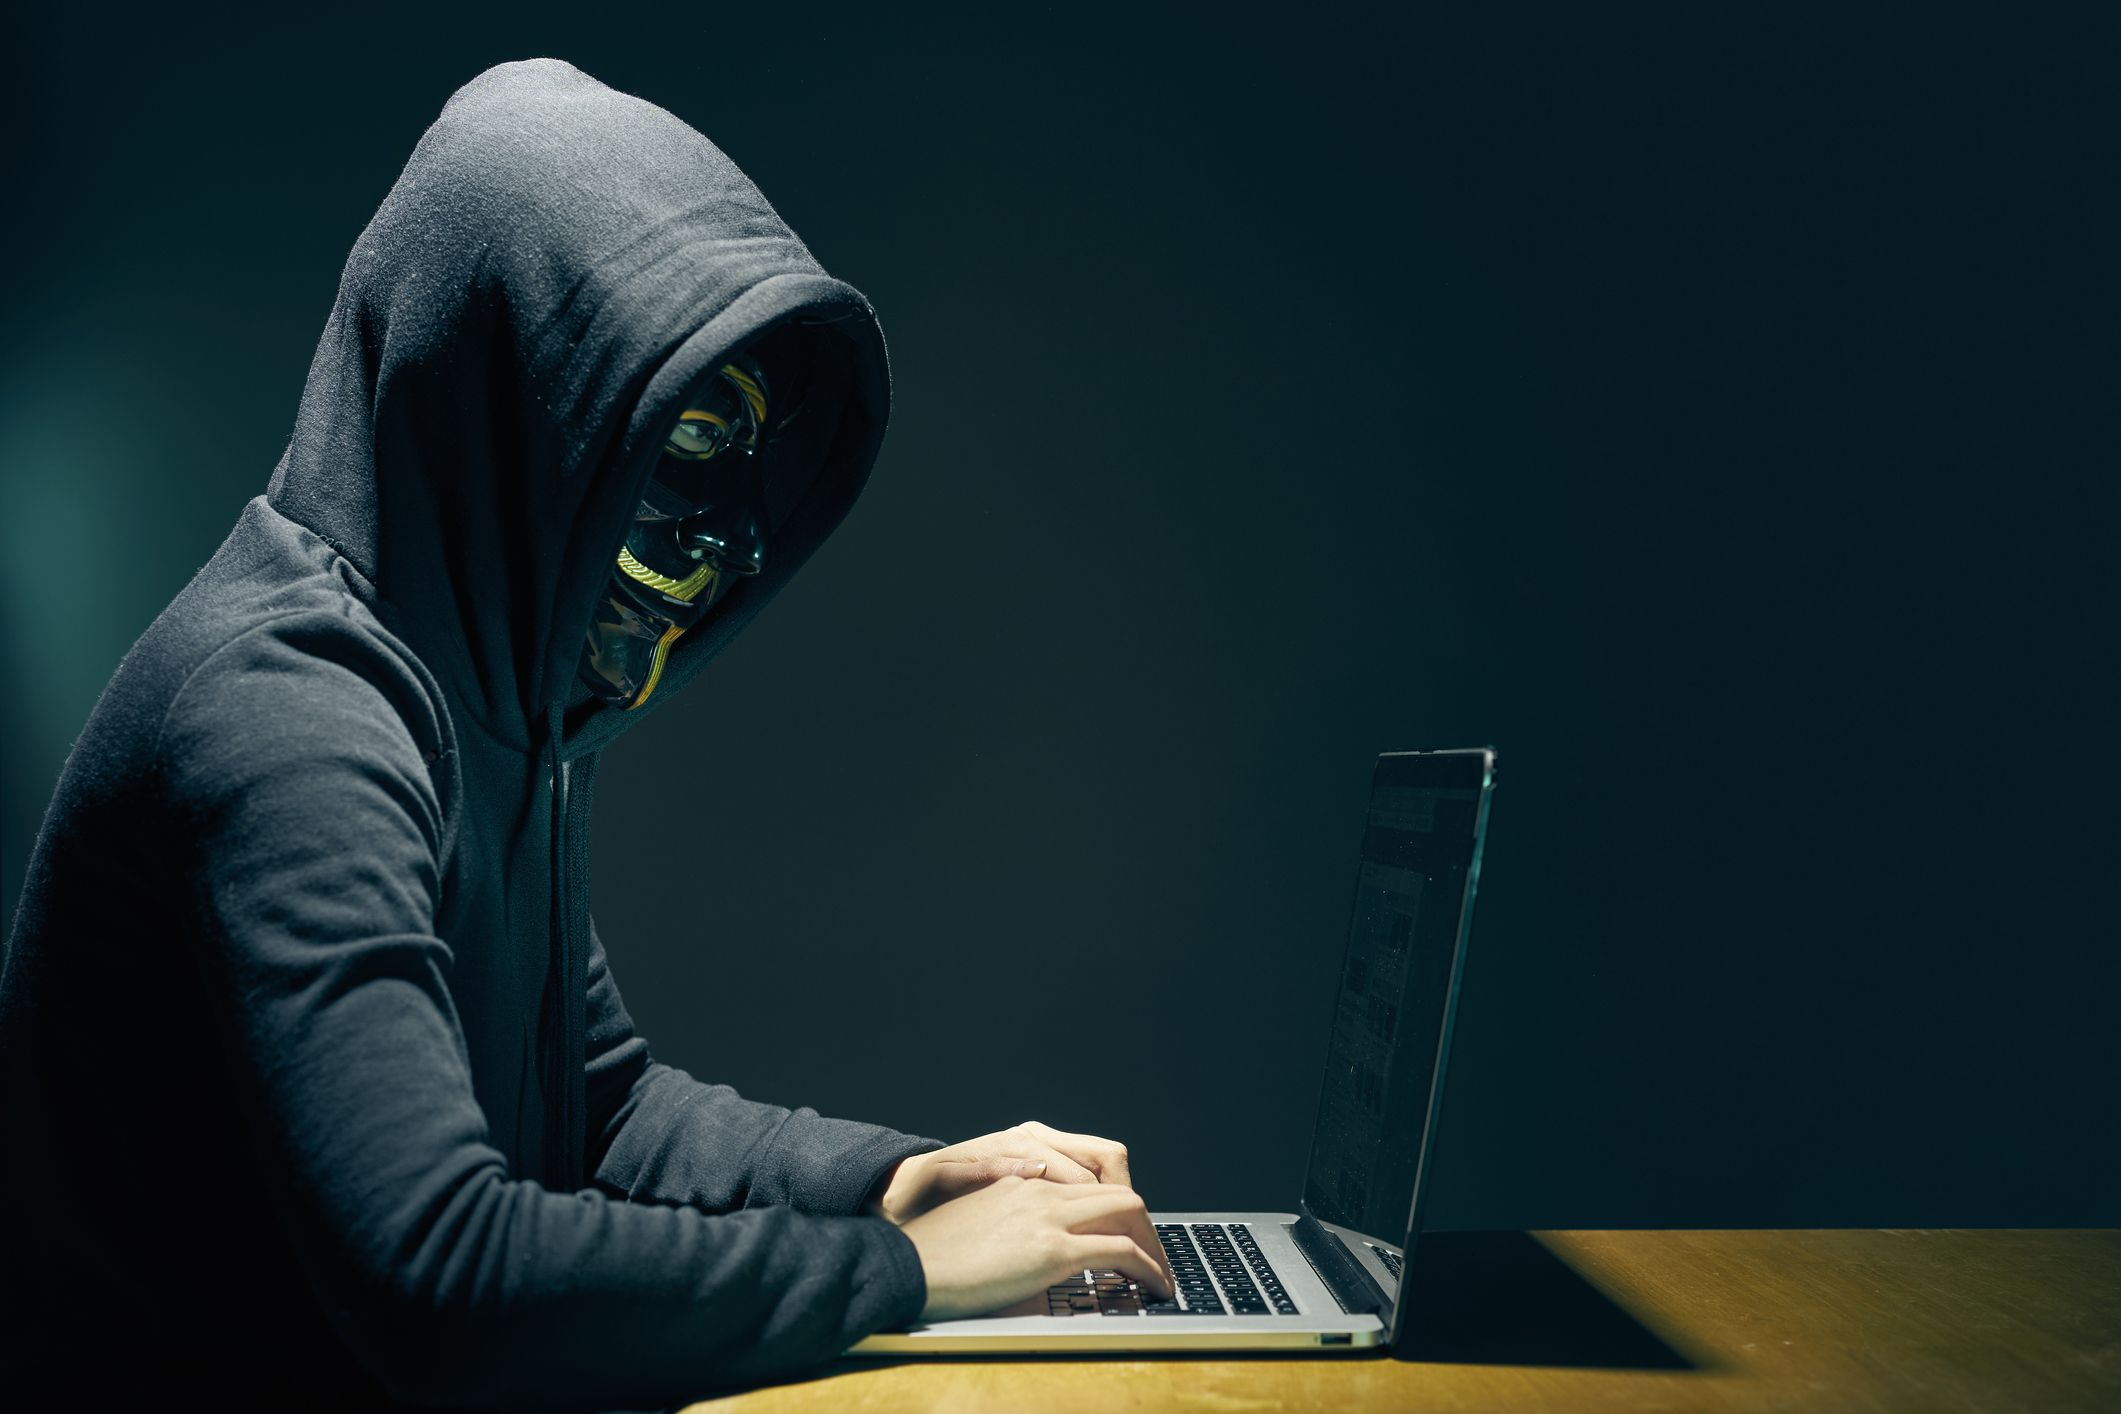 Hacker Wallpapers Technology Hq Hacker Pictures 4k Wallpapers 2019